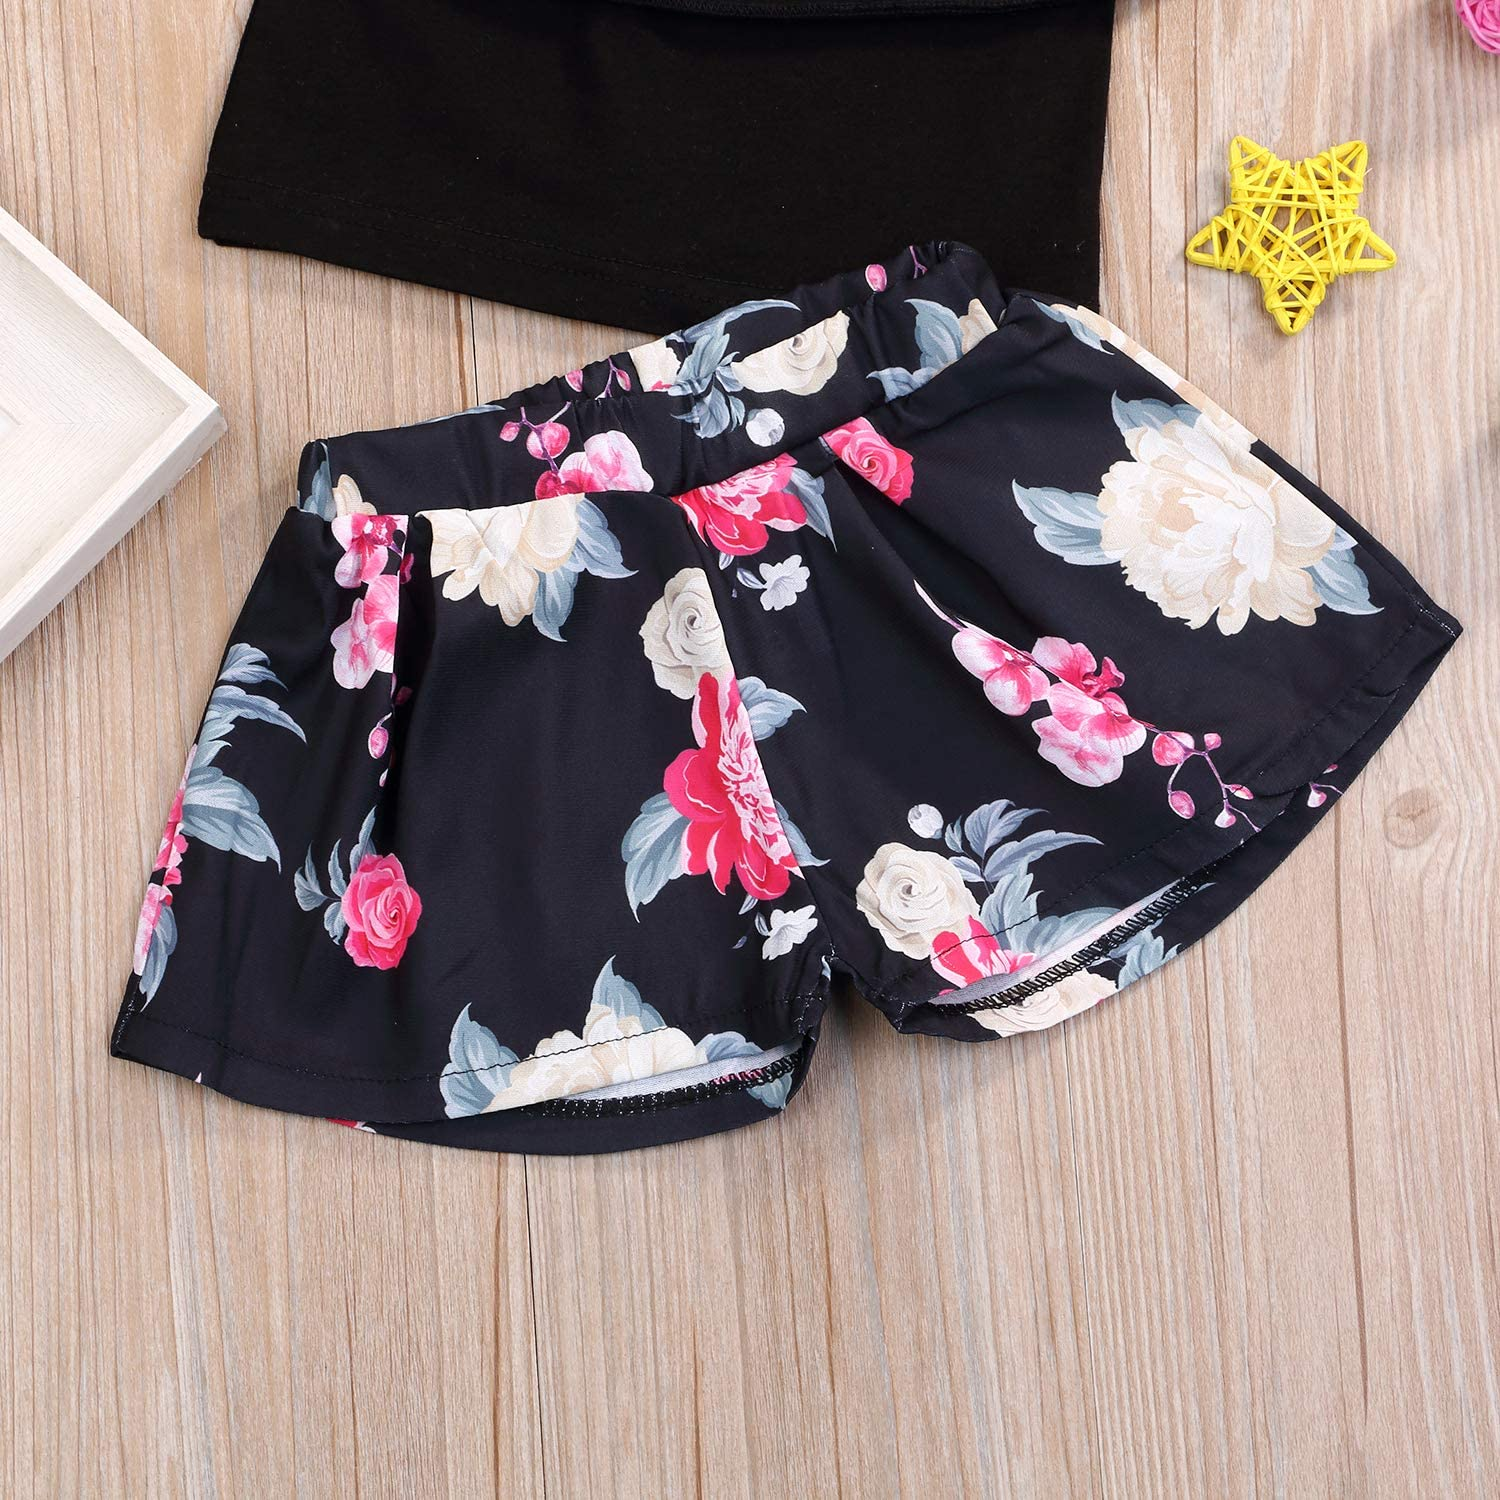 RYGHEWE Baby Girls Outfits 2Pcs Feather Dress Tops Shorts Set